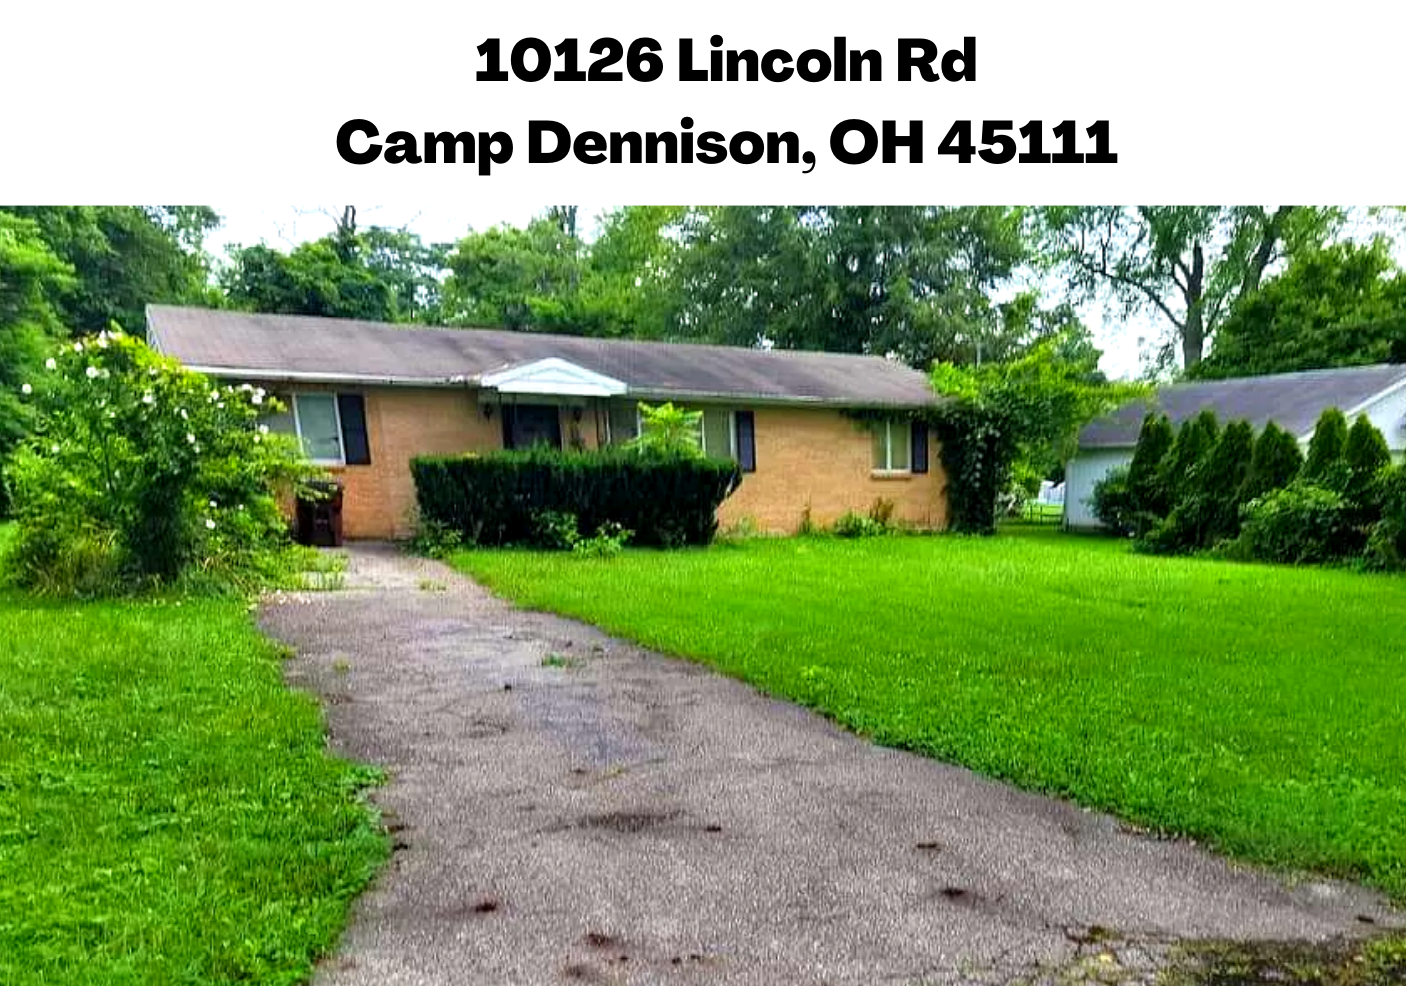 10106 and10126 Lincoln Rd, Camp Dennison, OH 45111 (Image - 1)